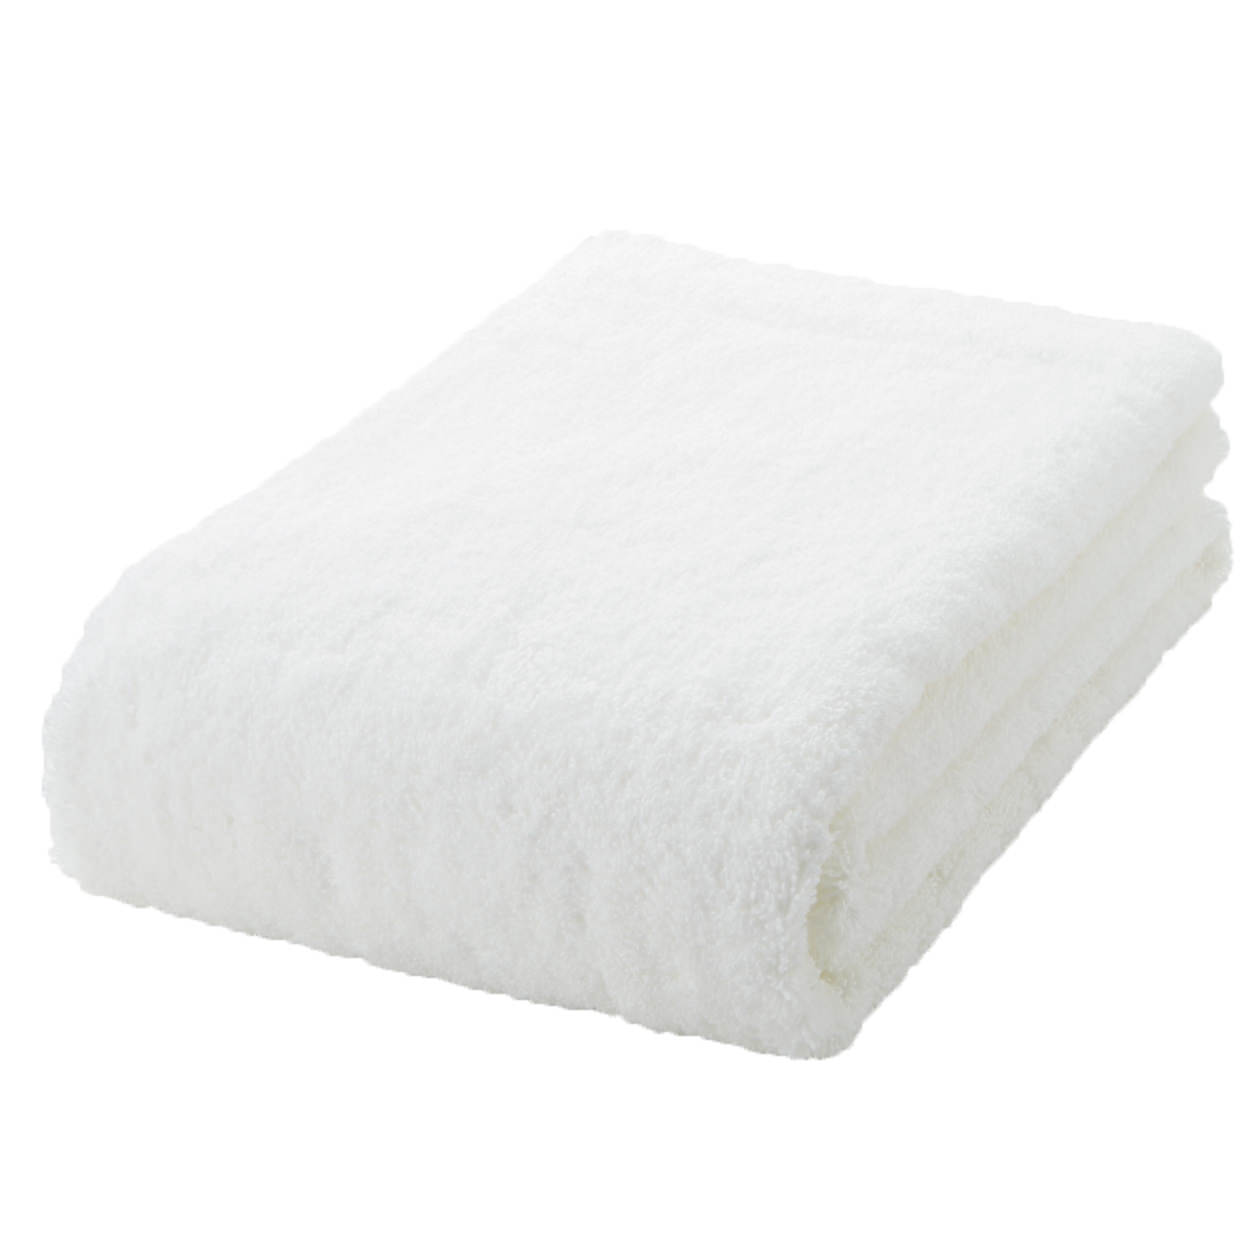 off white thick bath towel S